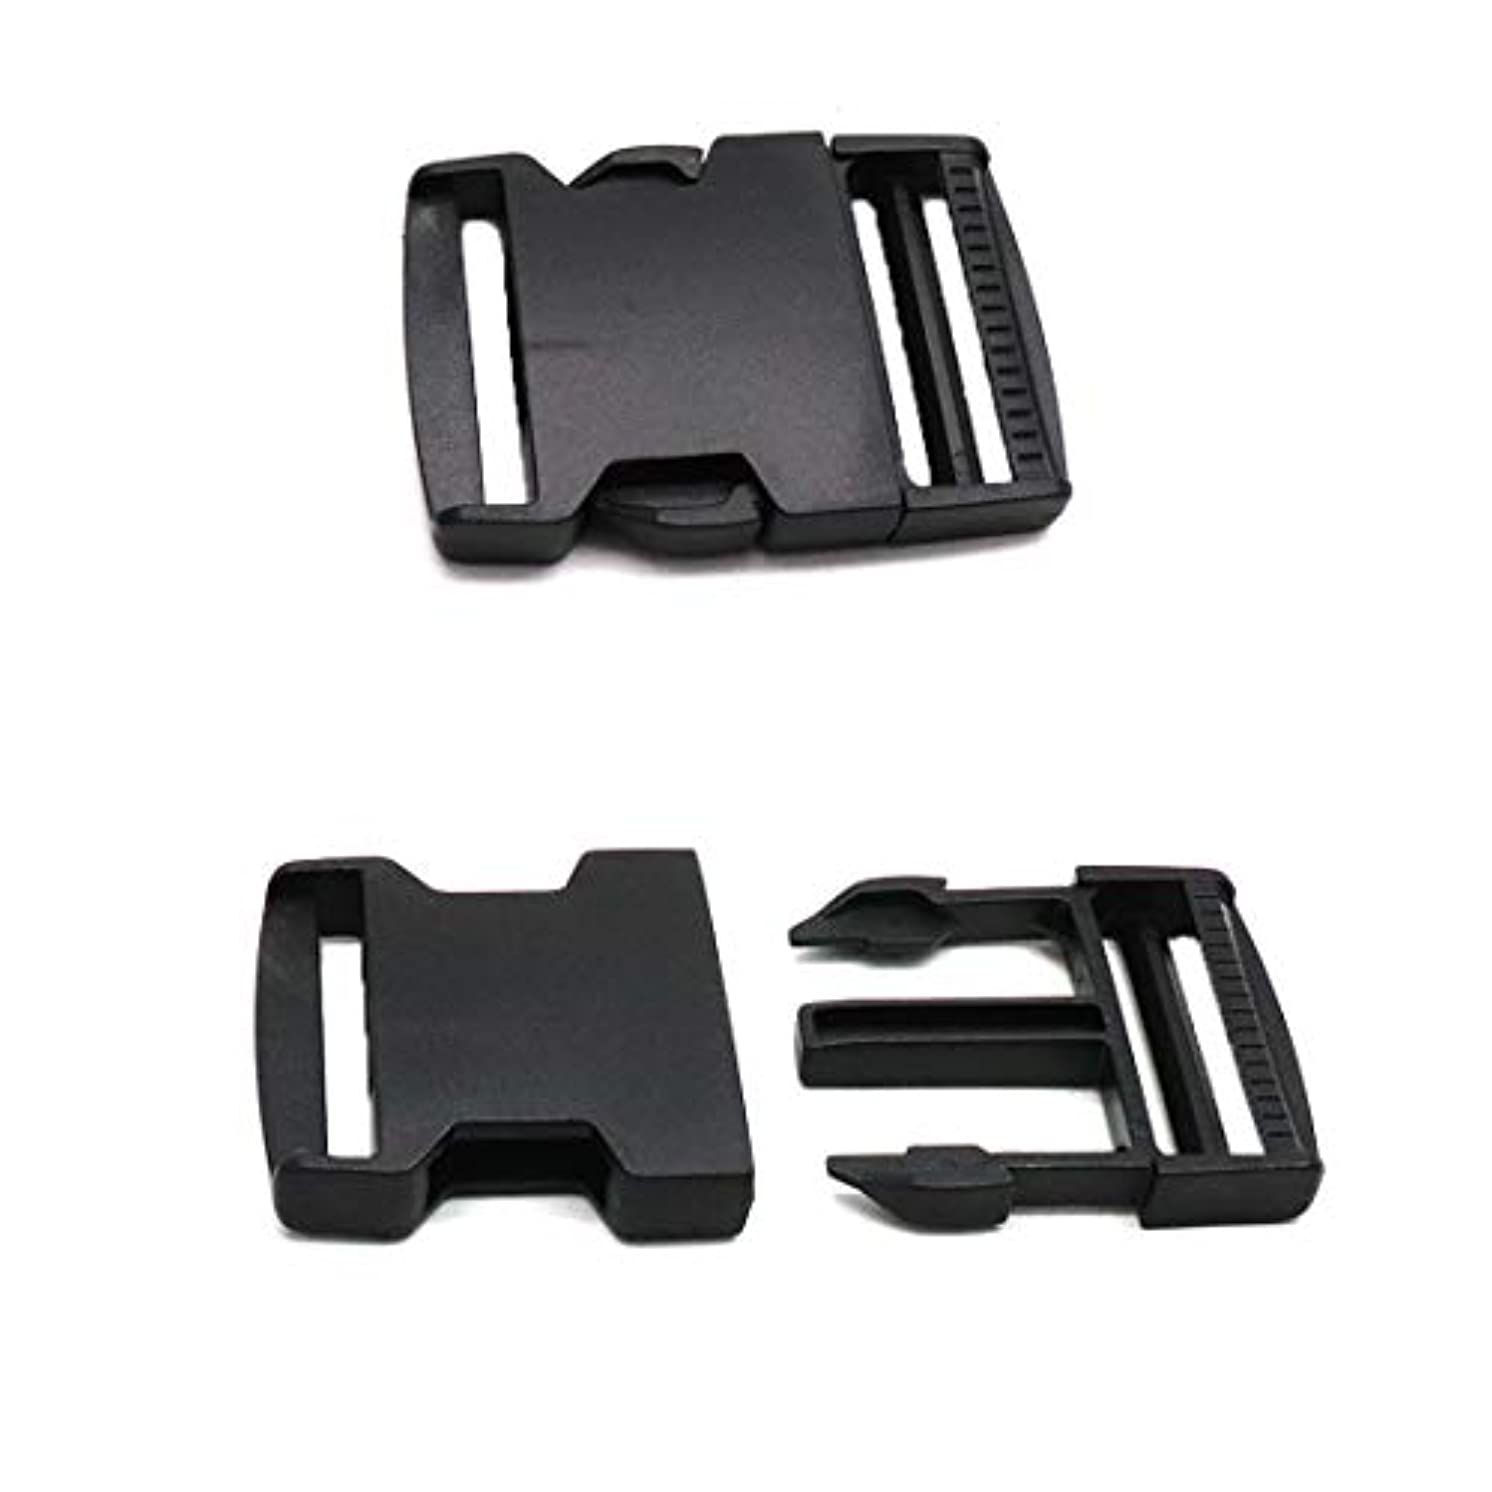 ZXHAO Black Plastic Safety Quick Release Buckles Fit Strap Width 3.2cm/0.13 inch for Luggage Straps,Backpack Repairing 20pcs